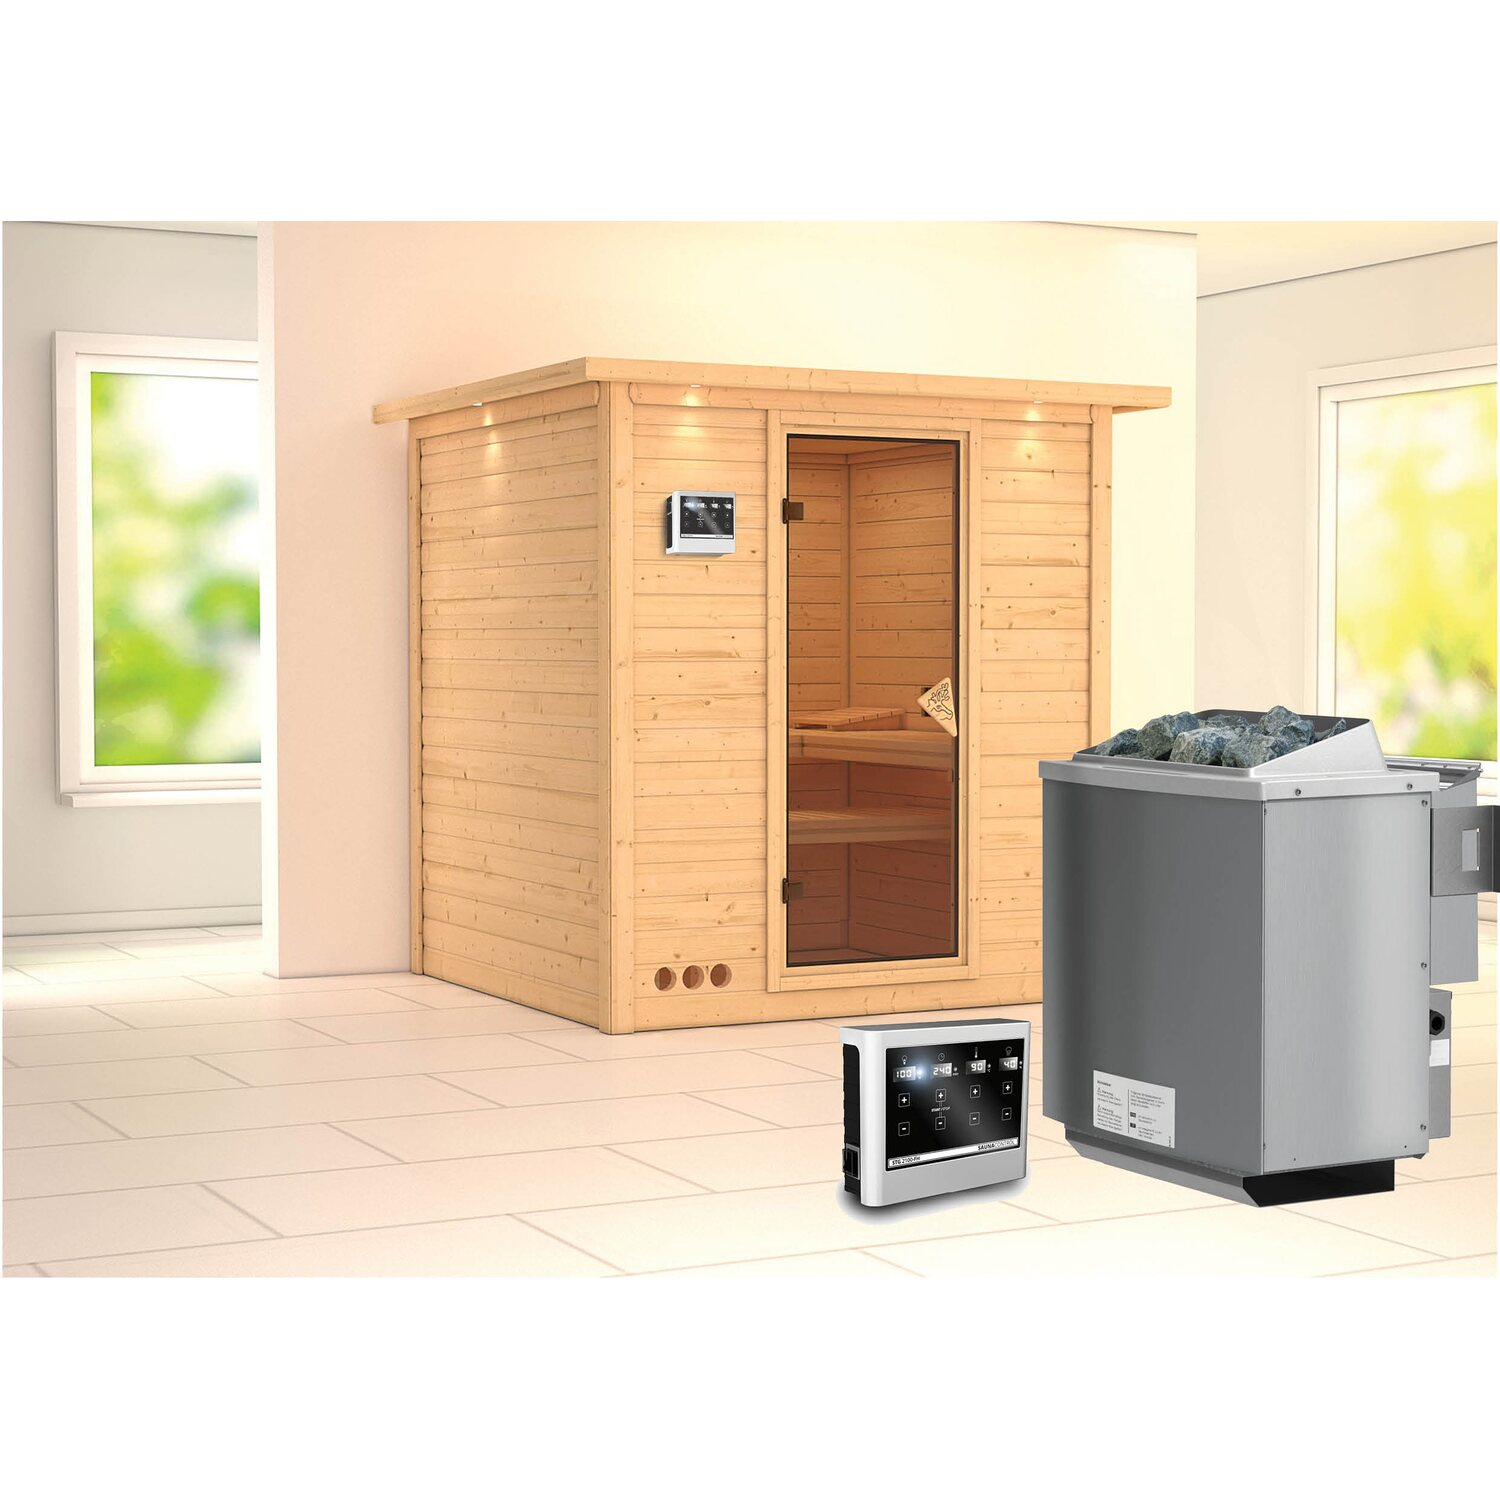 karibu sauna rona bio ofen mit ext strg bluetooth lautspr zubeh r bronze kaufen bei obi. Black Bedroom Furniture Sets. Home Design Ideas